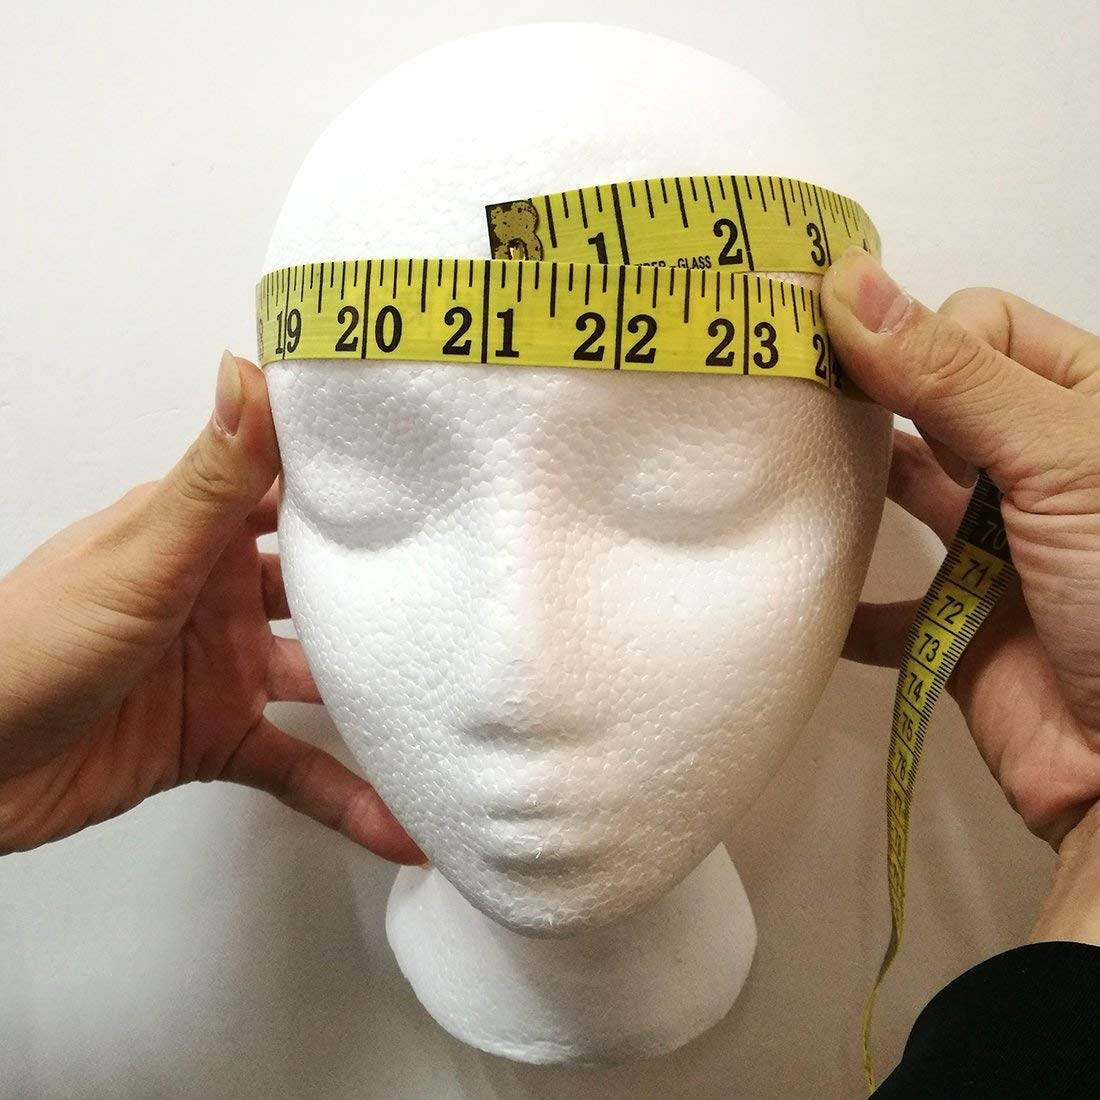 Amazon.com: Female Styrofoam Mannequin Head Model - Wig/Hat Display Stand - Art Work Painting Novelty - Foam White by LIAMTU: Beauty